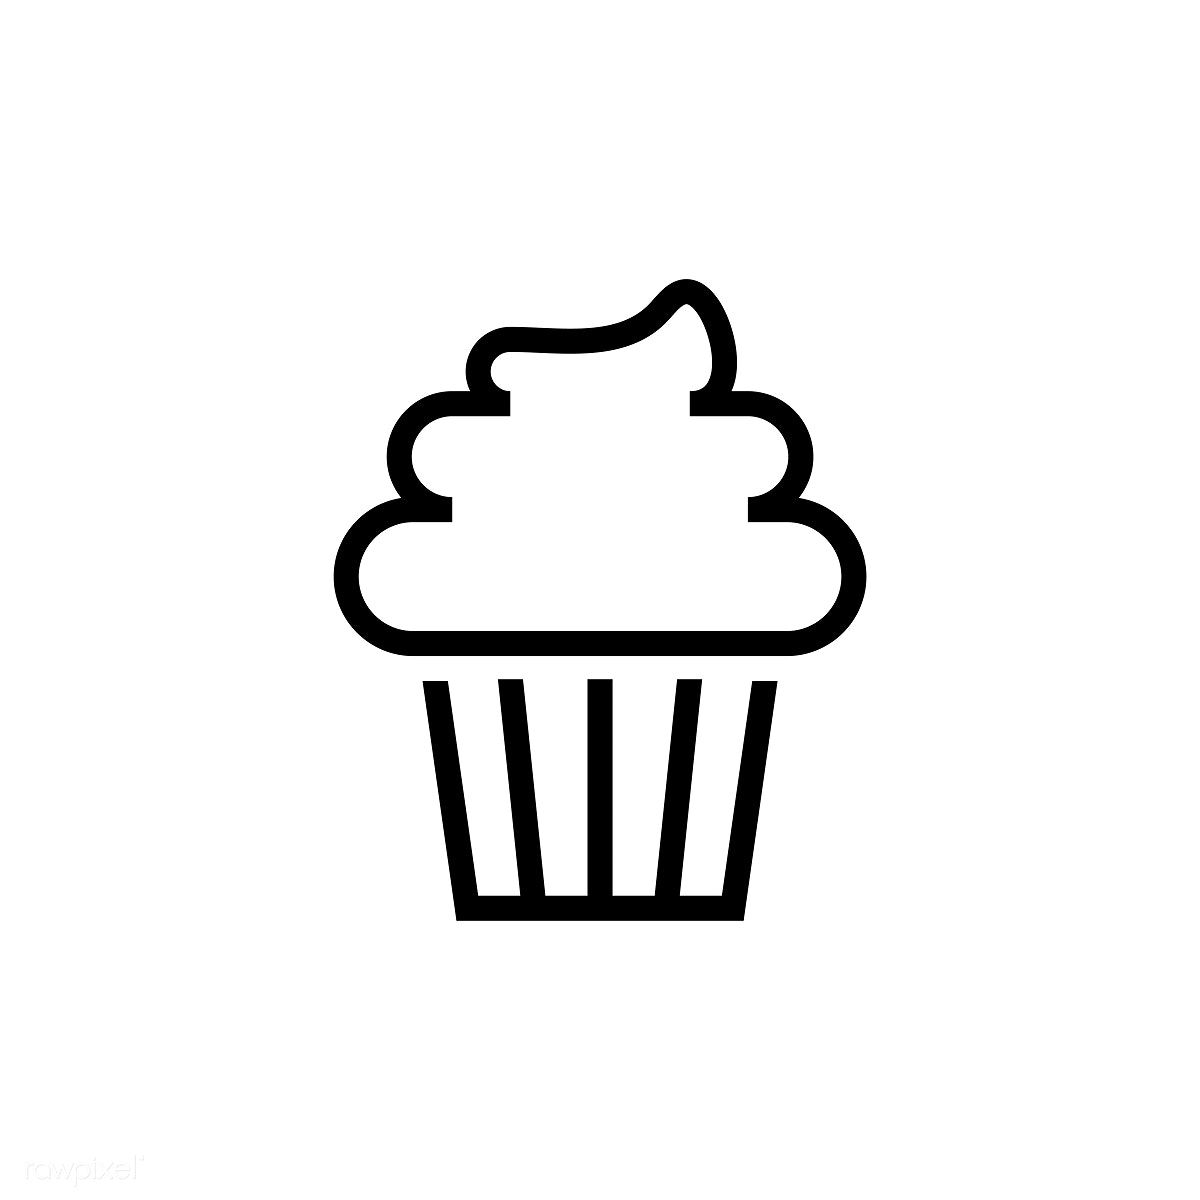 Cupcake With Frosting Icon Vector Free Image By Rawpixel Com Ningzk V Cake Icon Cupcake Logo Cupcake Vector